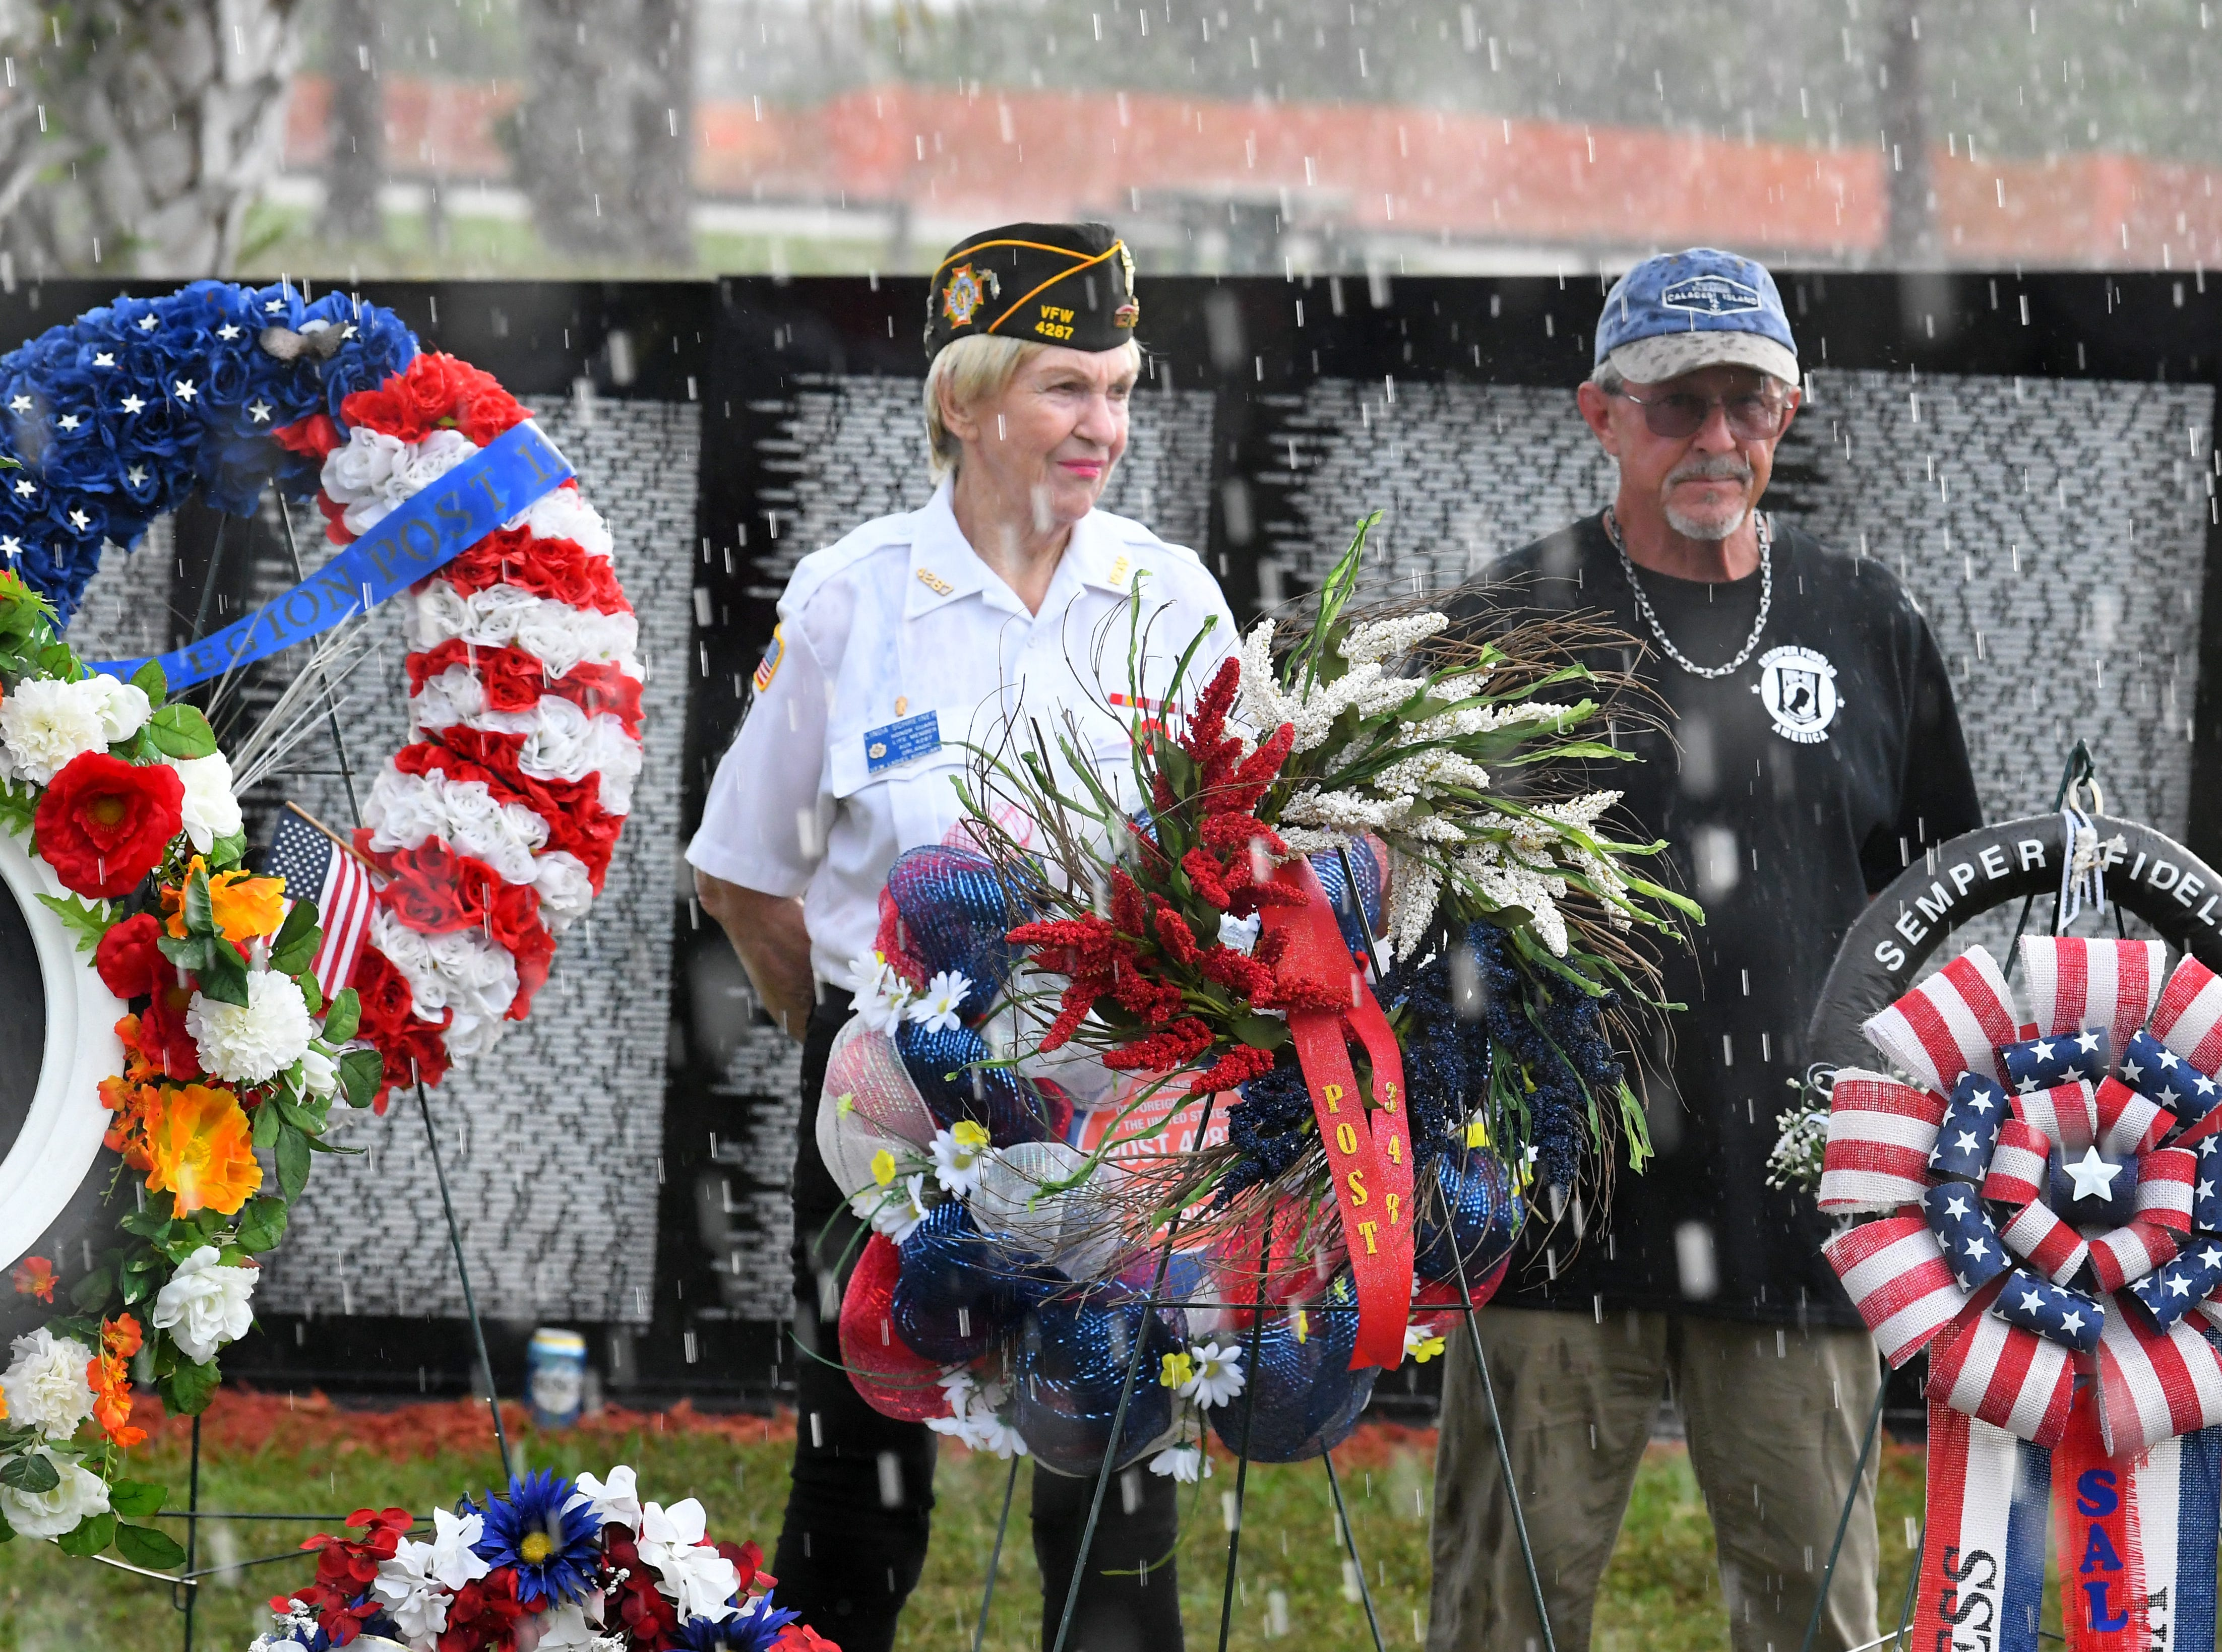 Most participants sough shelter while a brief but heavy rain began. But not 8 year old Ajalynn Fields, who continued to salute for several minutes in front of the wreath for the Veterans Transitional Facility. Monday's presentation of wreaths and opening ceremony at the Vietnam Traveling Memorial Wall, which will be set up until May 12. It is part of The 32nd Annual Vietnam and All Veterans Reunion, a free event open to the public at Wickham Park in Melbourne May 9-12.